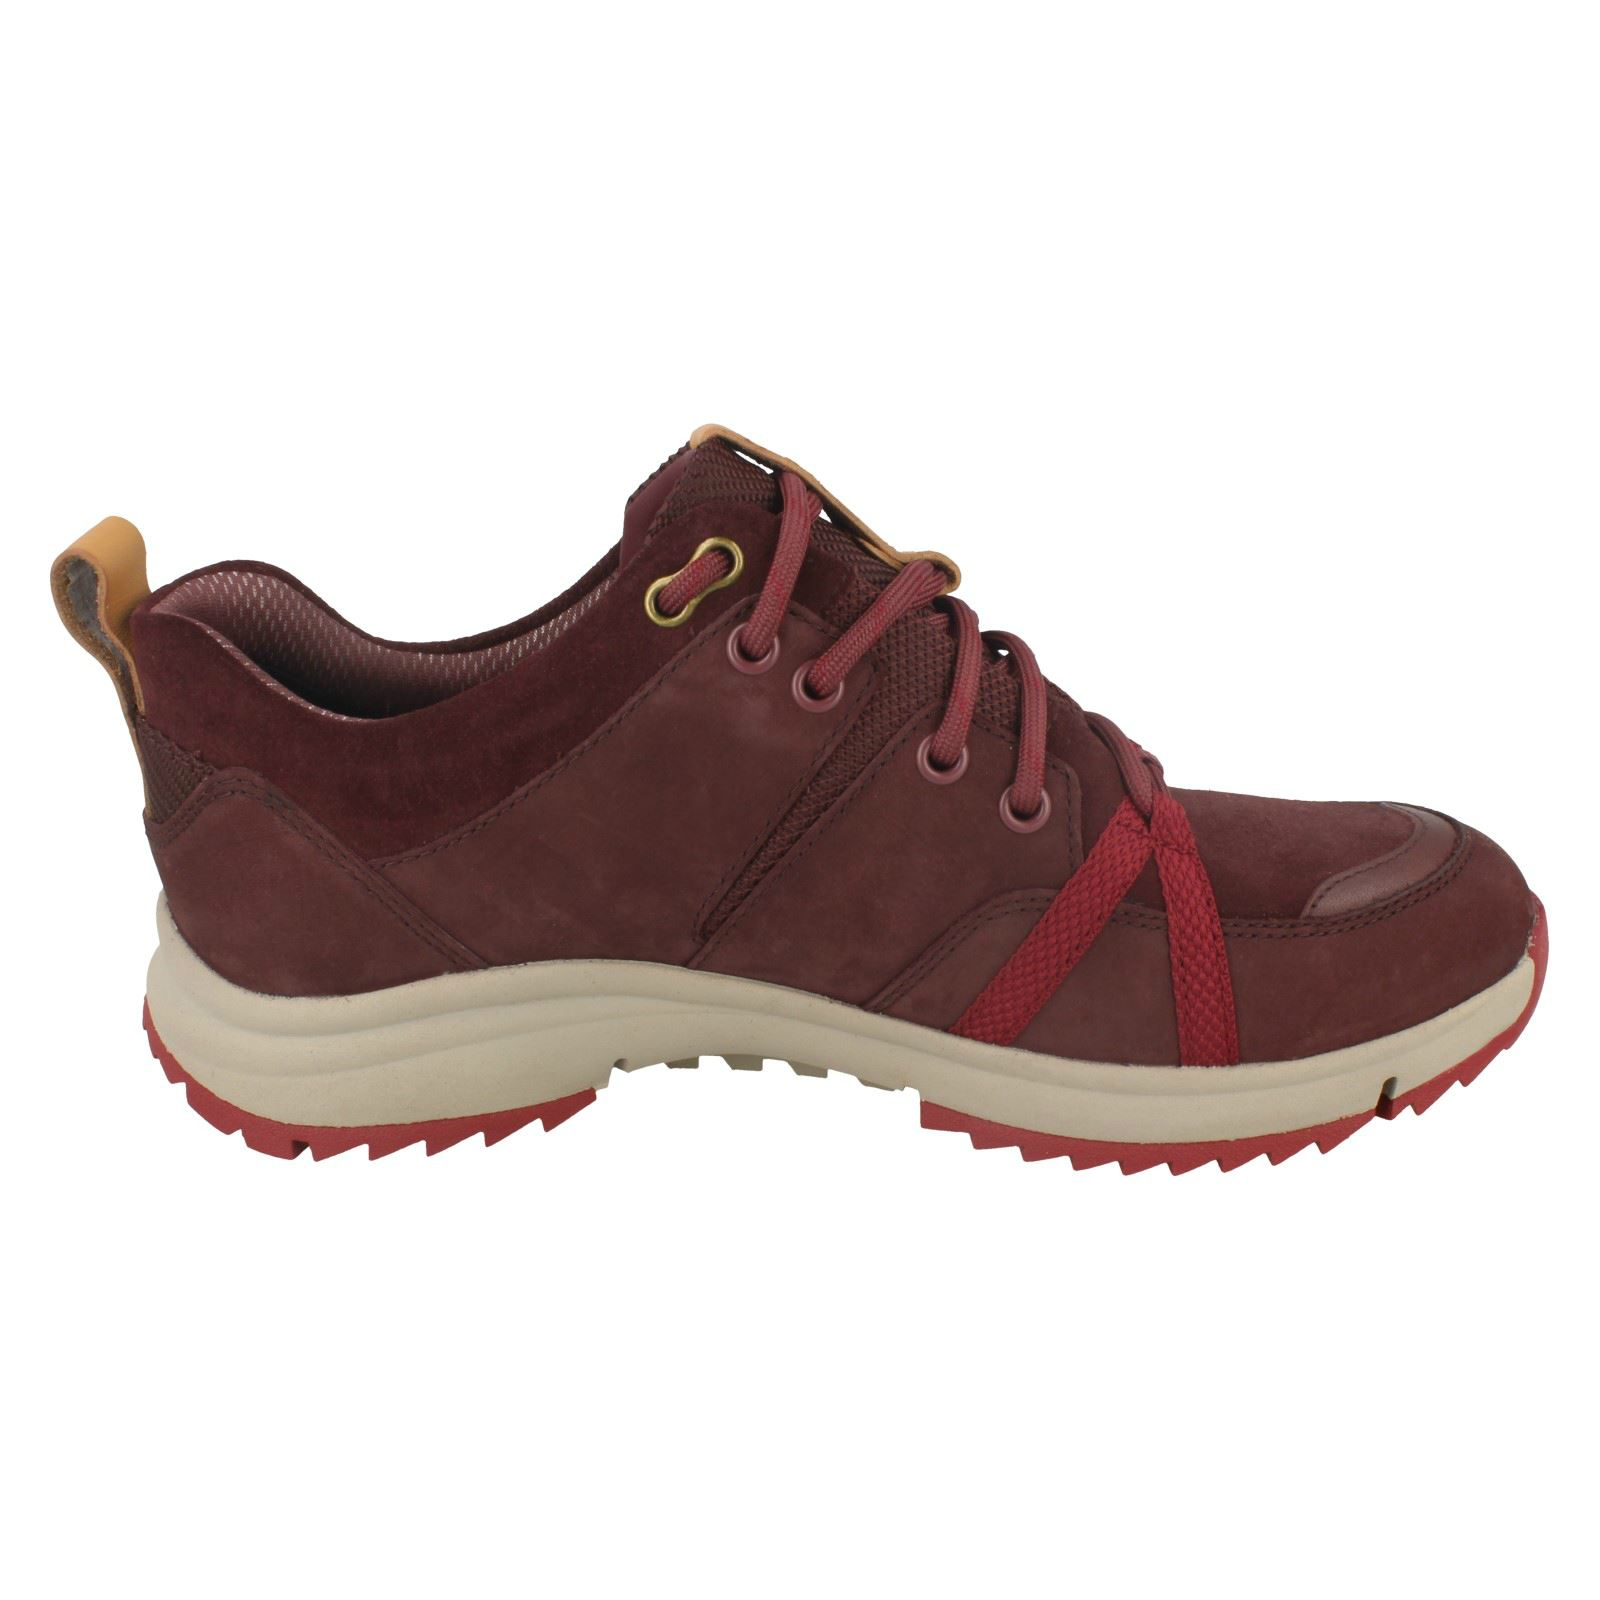 Ladies Clarks Trainer Style Lace Up Fastening Leather Chaussures Chaussures Chaussures - 'Tri Trek Gtx' 48cbc4